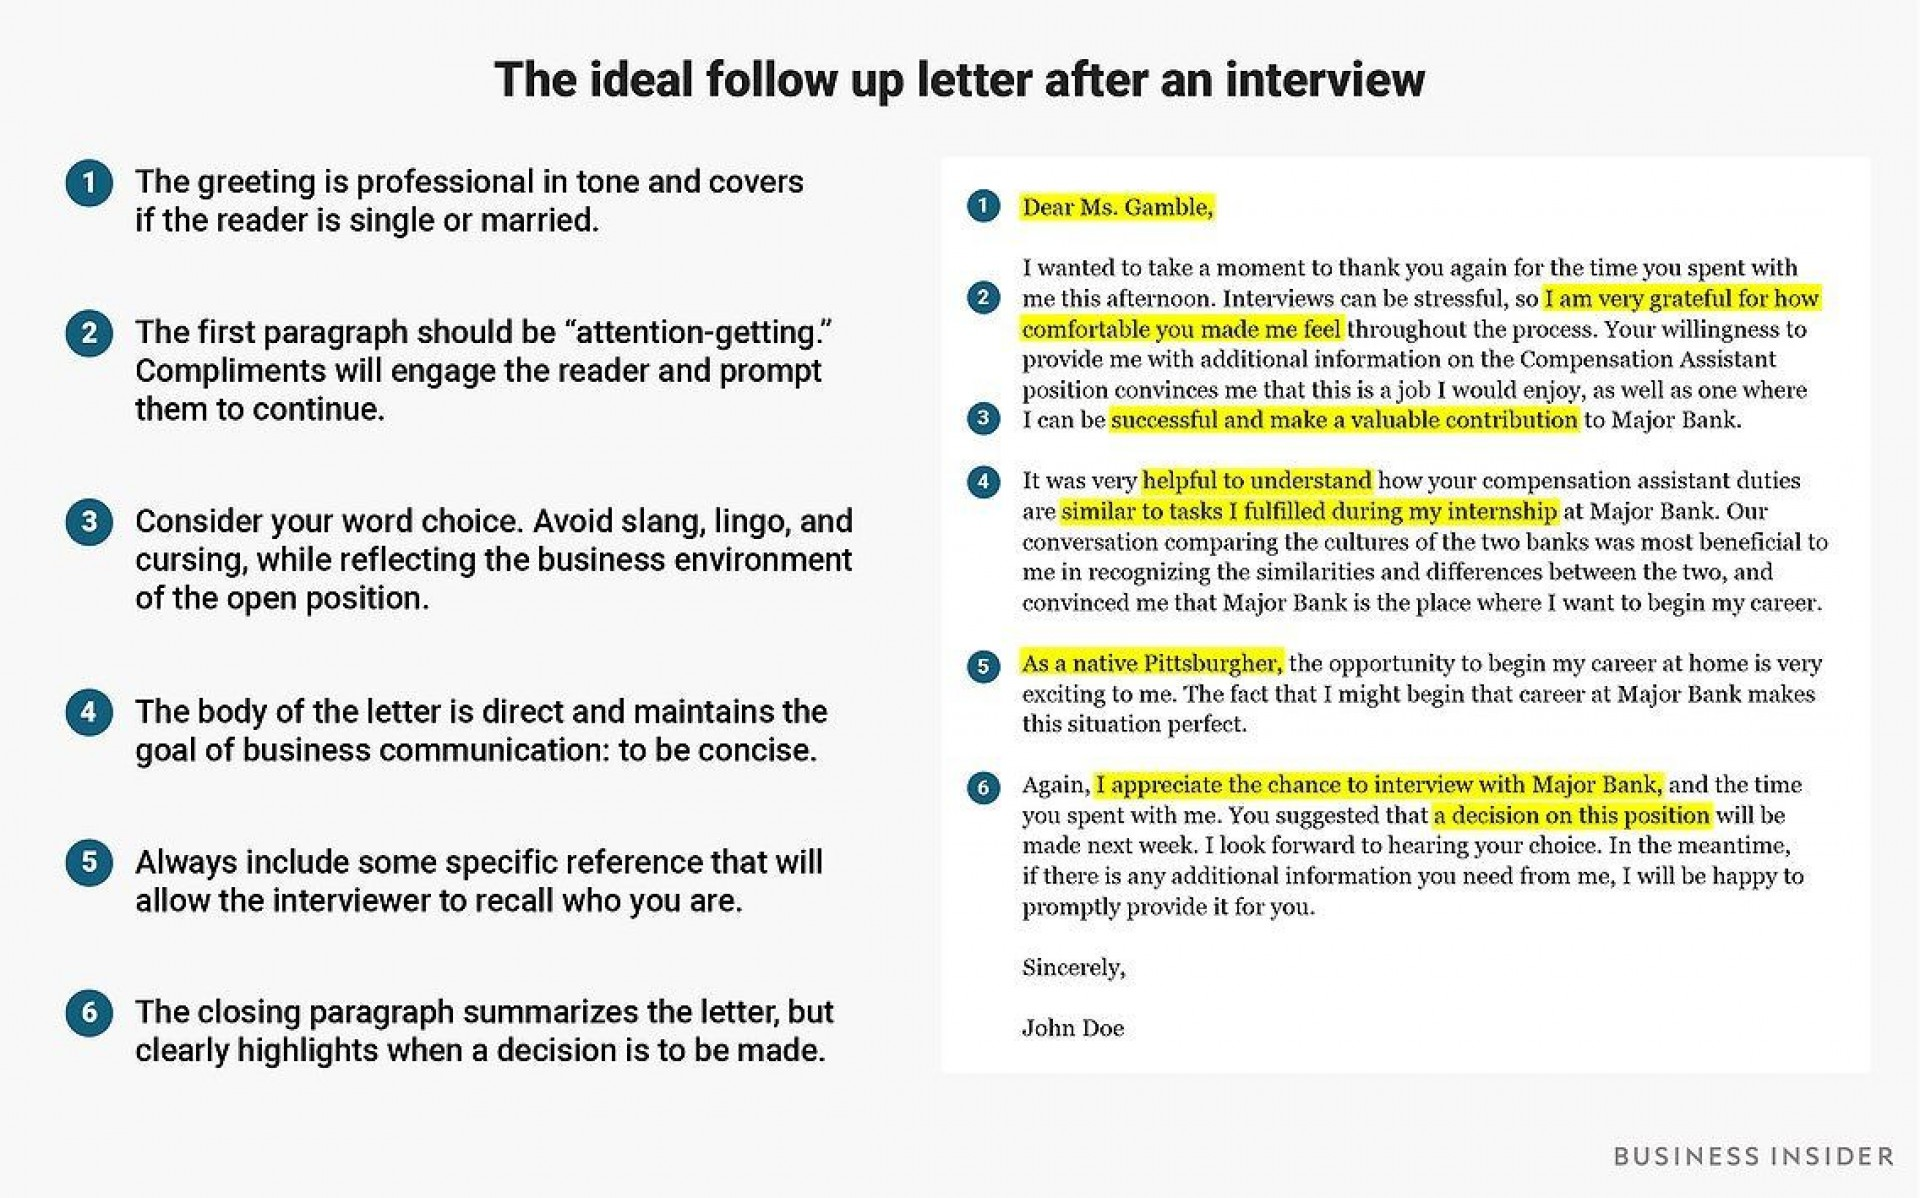 000 Wonderful Follow Up Email Sample After Interview Idea  Polite When You Haven't Heard Back1920